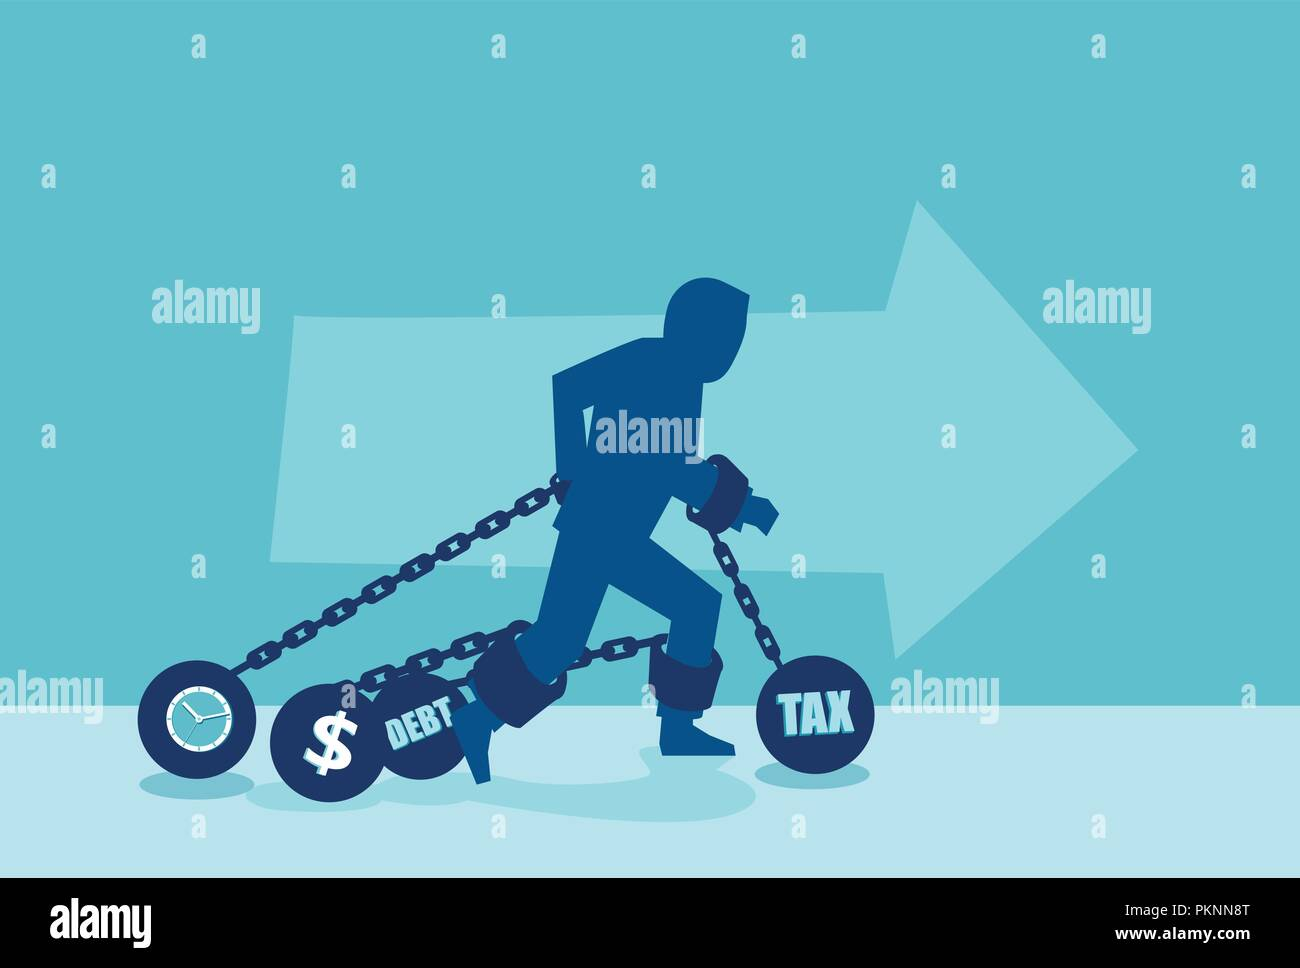 Concept vector of a man in chains of heavy debt financial obligations. - Stock Image